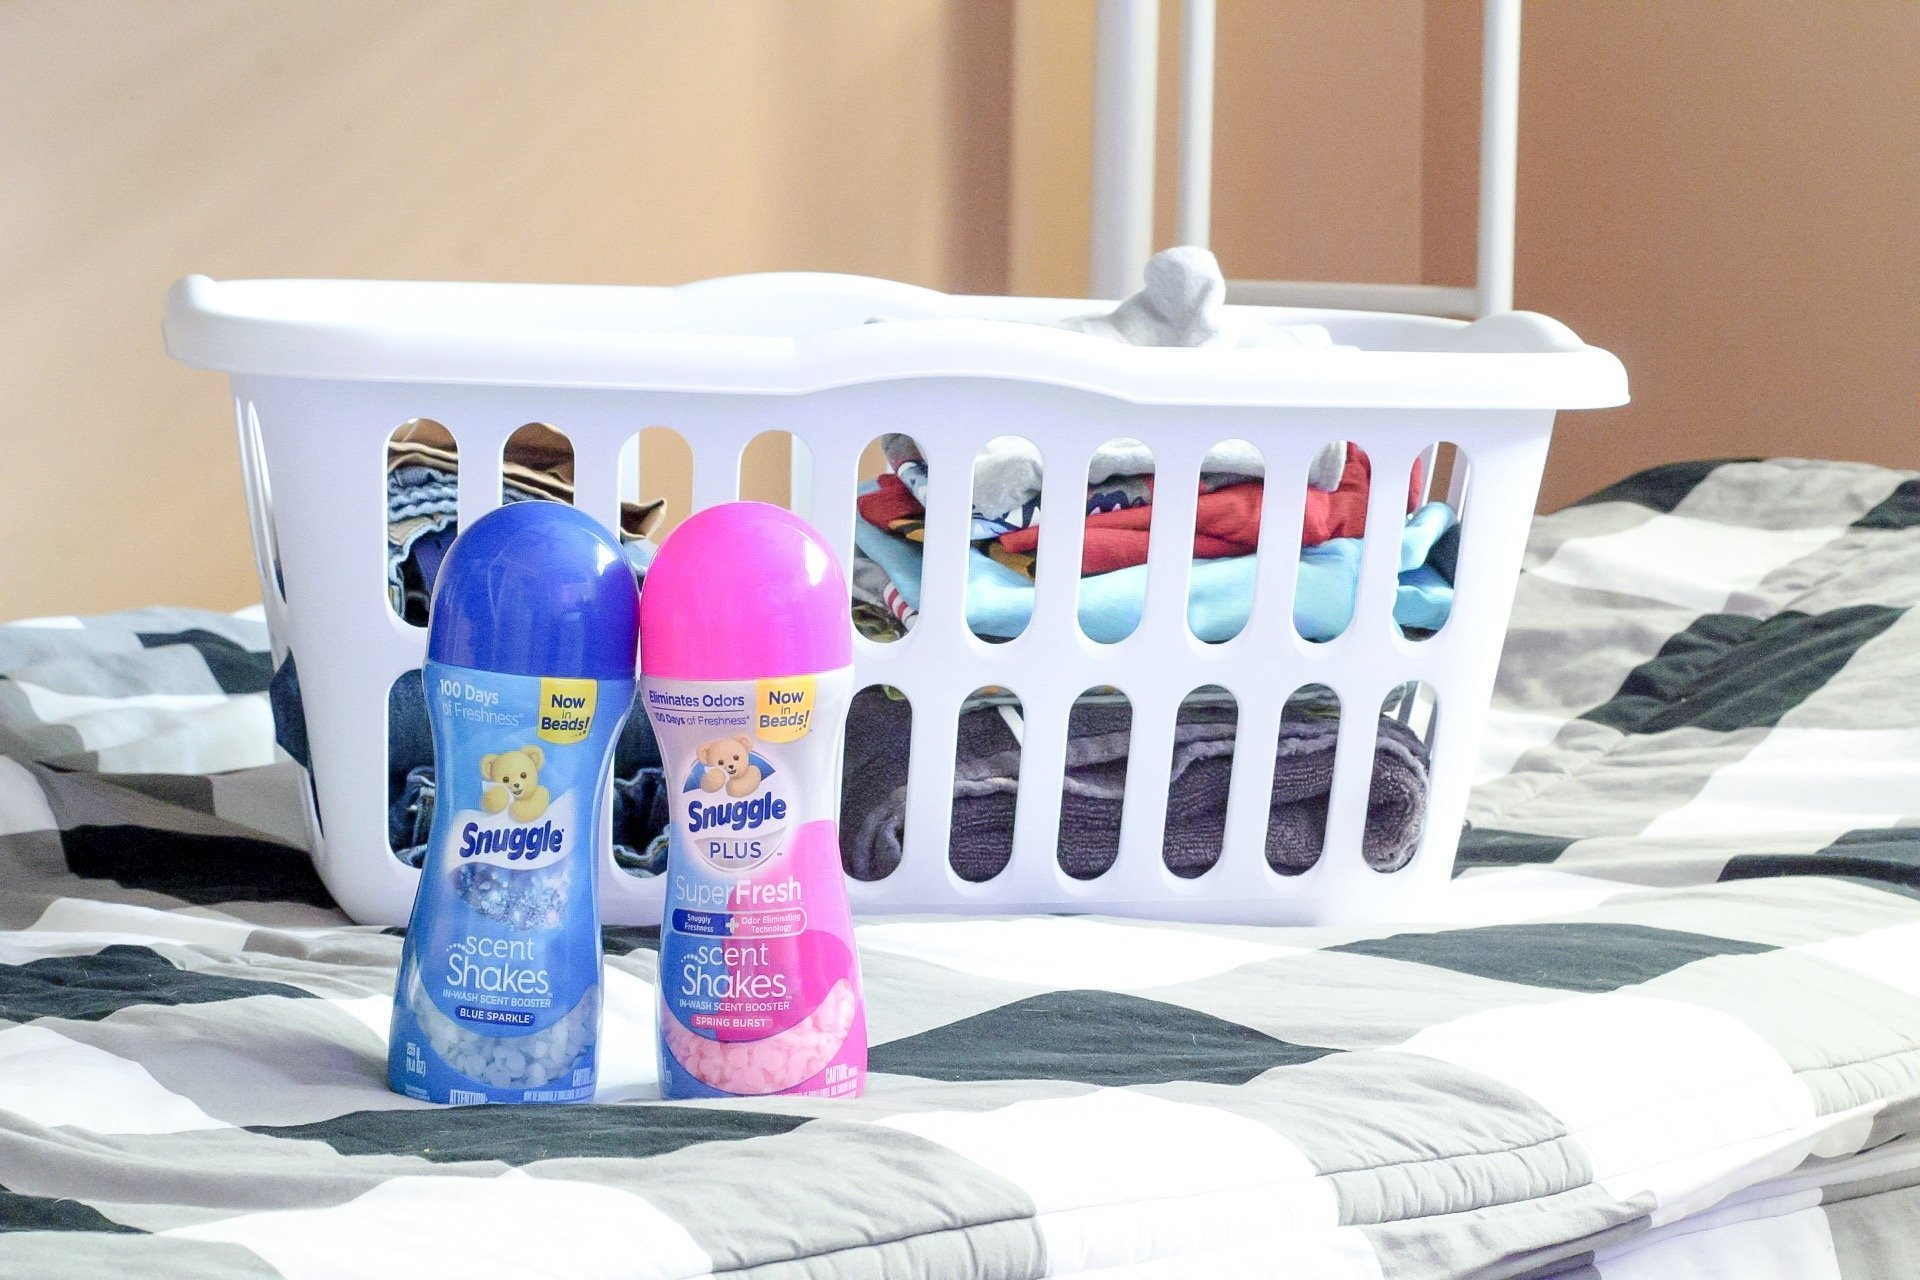 Snuggle Scentshakes next to a laundry basket of folded clothes